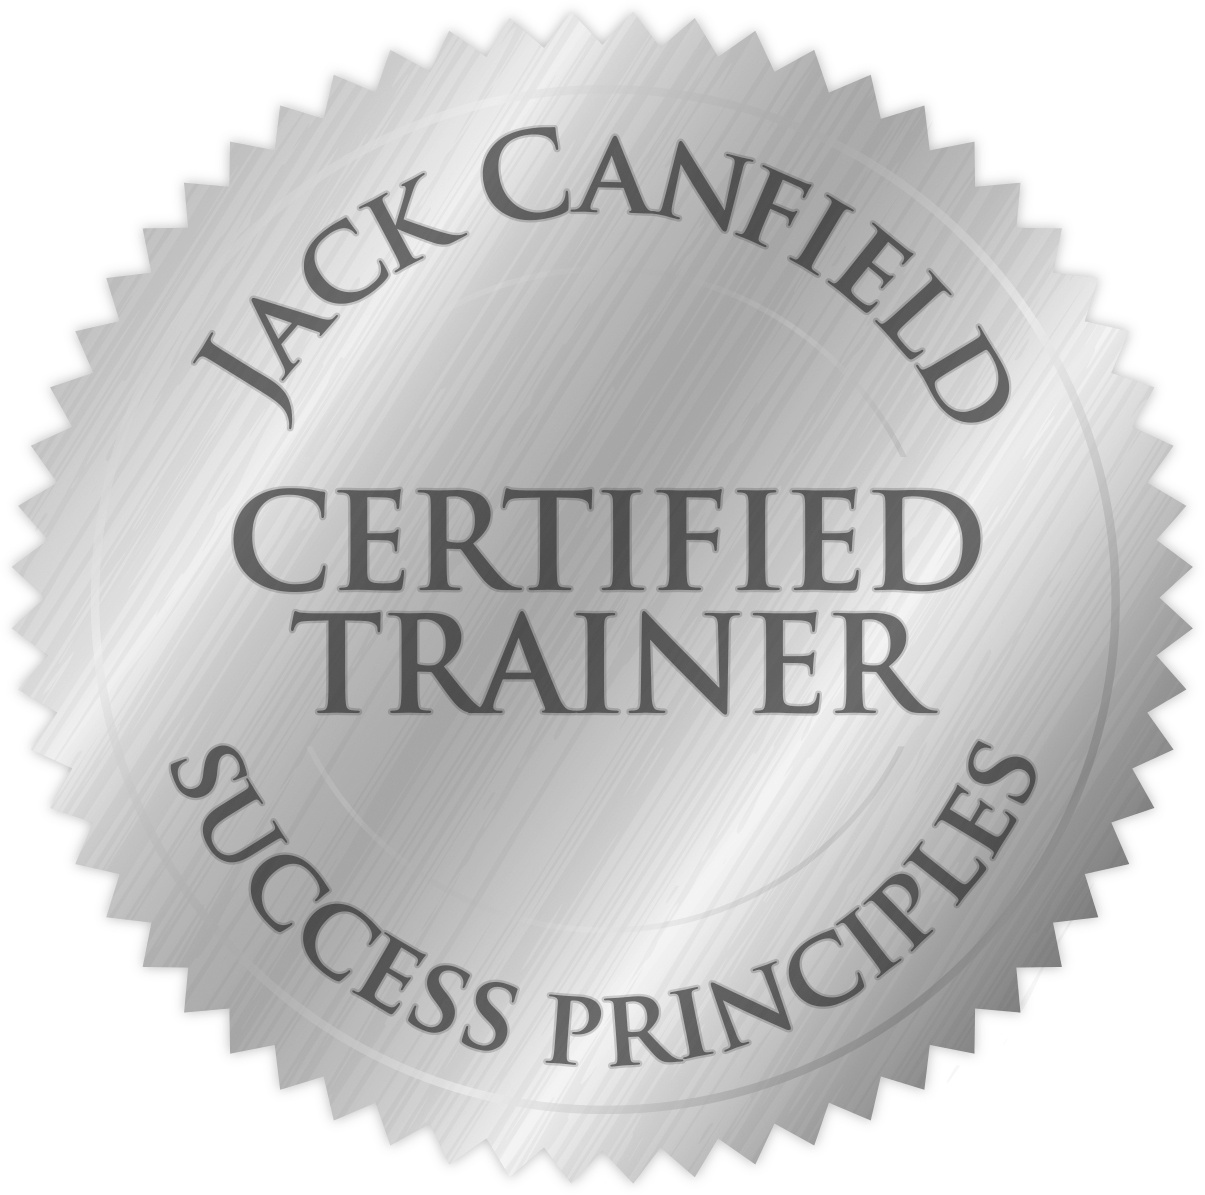 Certified Jack Canfield Success Principles Trainer